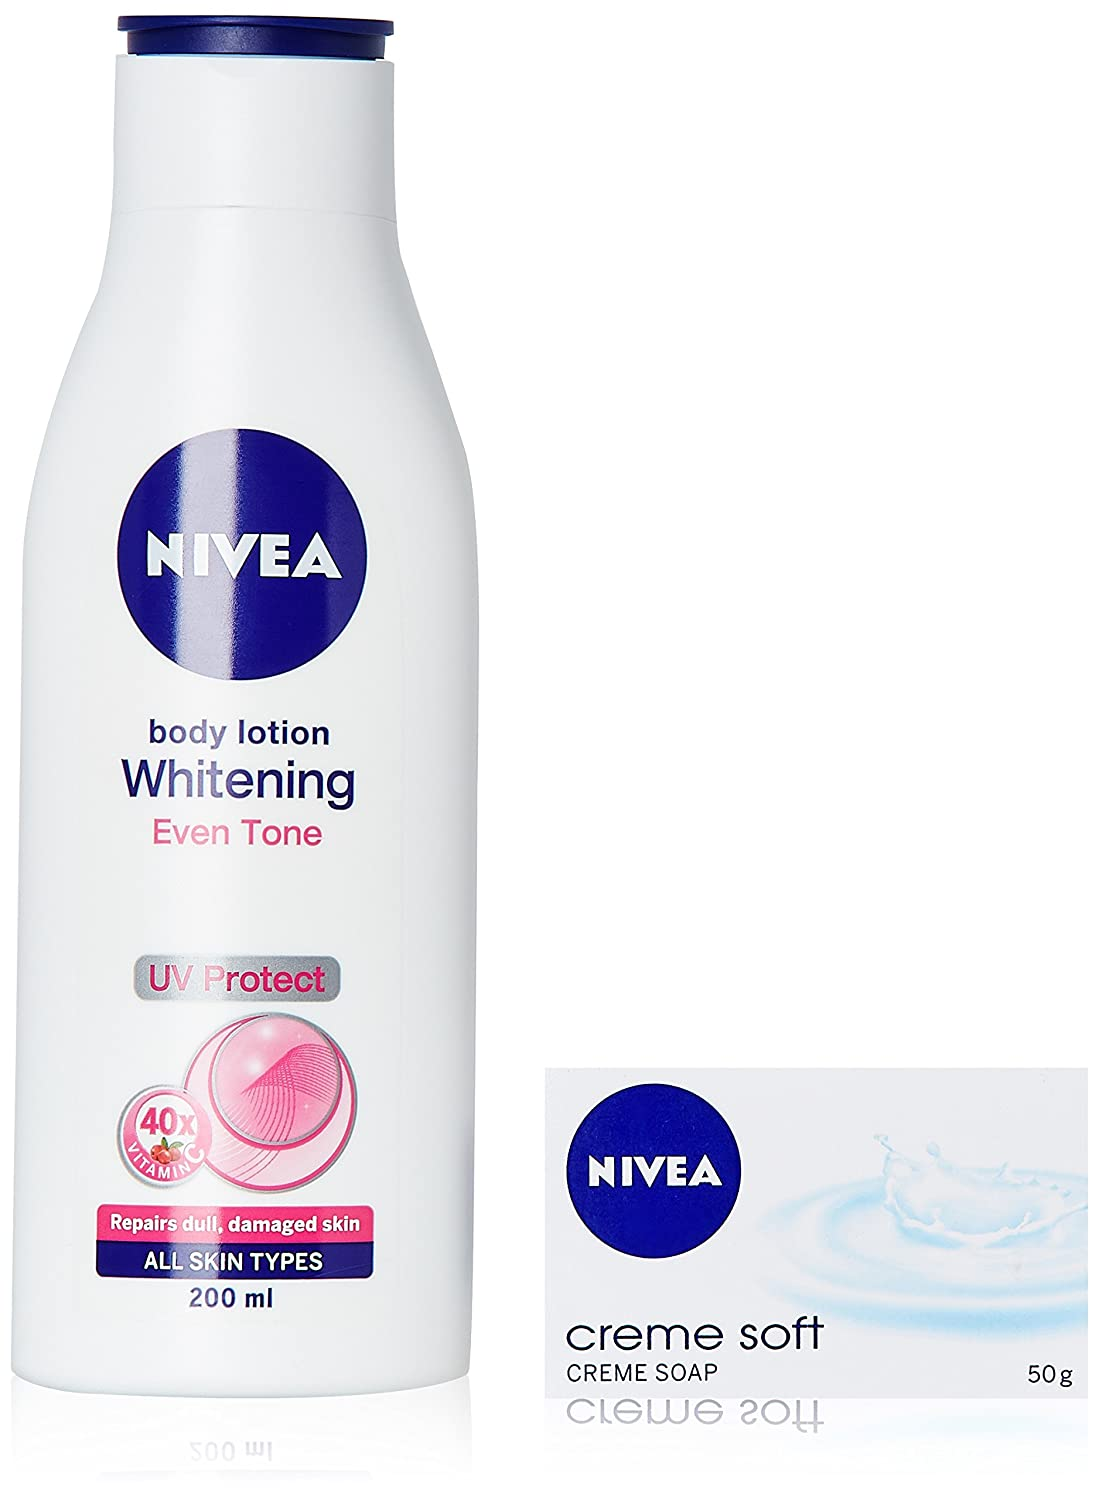 Buy Nivea Whitening Even Tone 200ml With Creme Soap 3x50g Online Extra White Firming Lotion Spf15 400 Ml At Low Prices In India